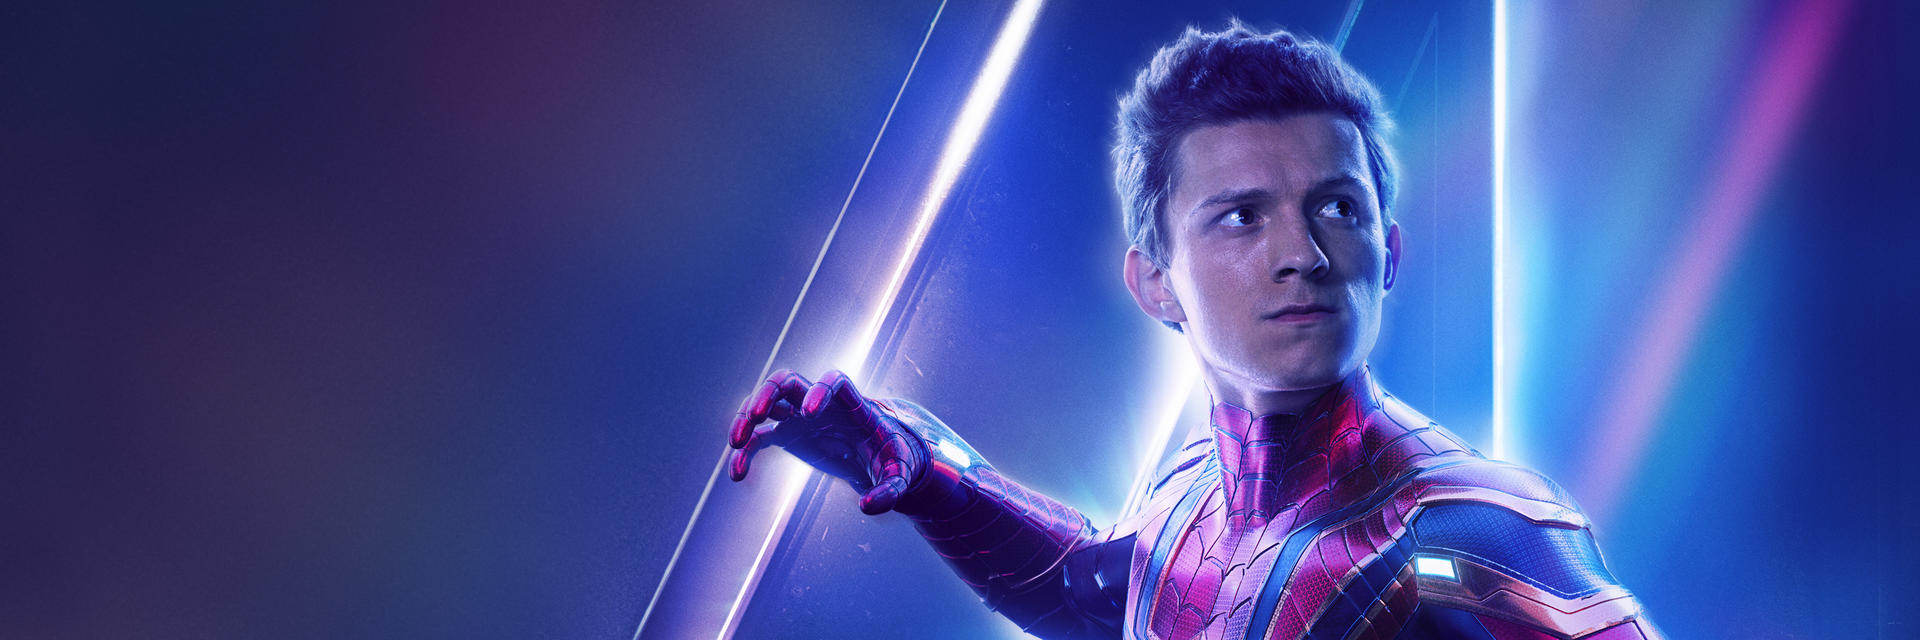 Spider-Man (Peter Parker) | Characters | Marvel